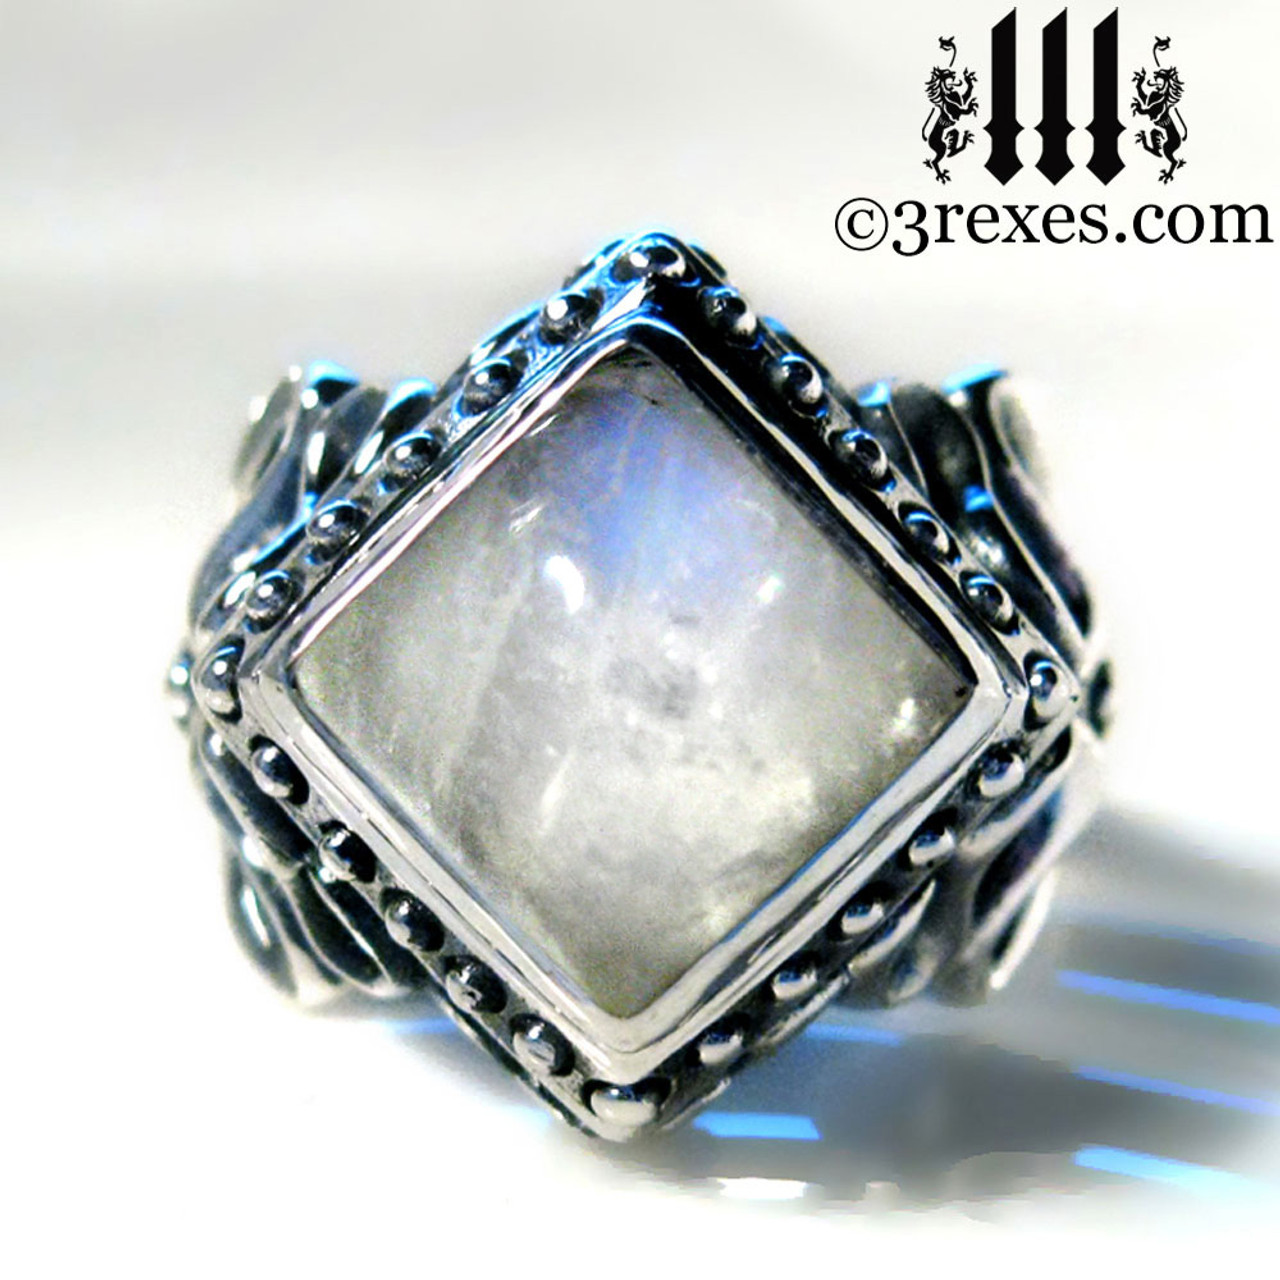 Raven Love Silver Wedding Ring - 3 Rexes Jewelry